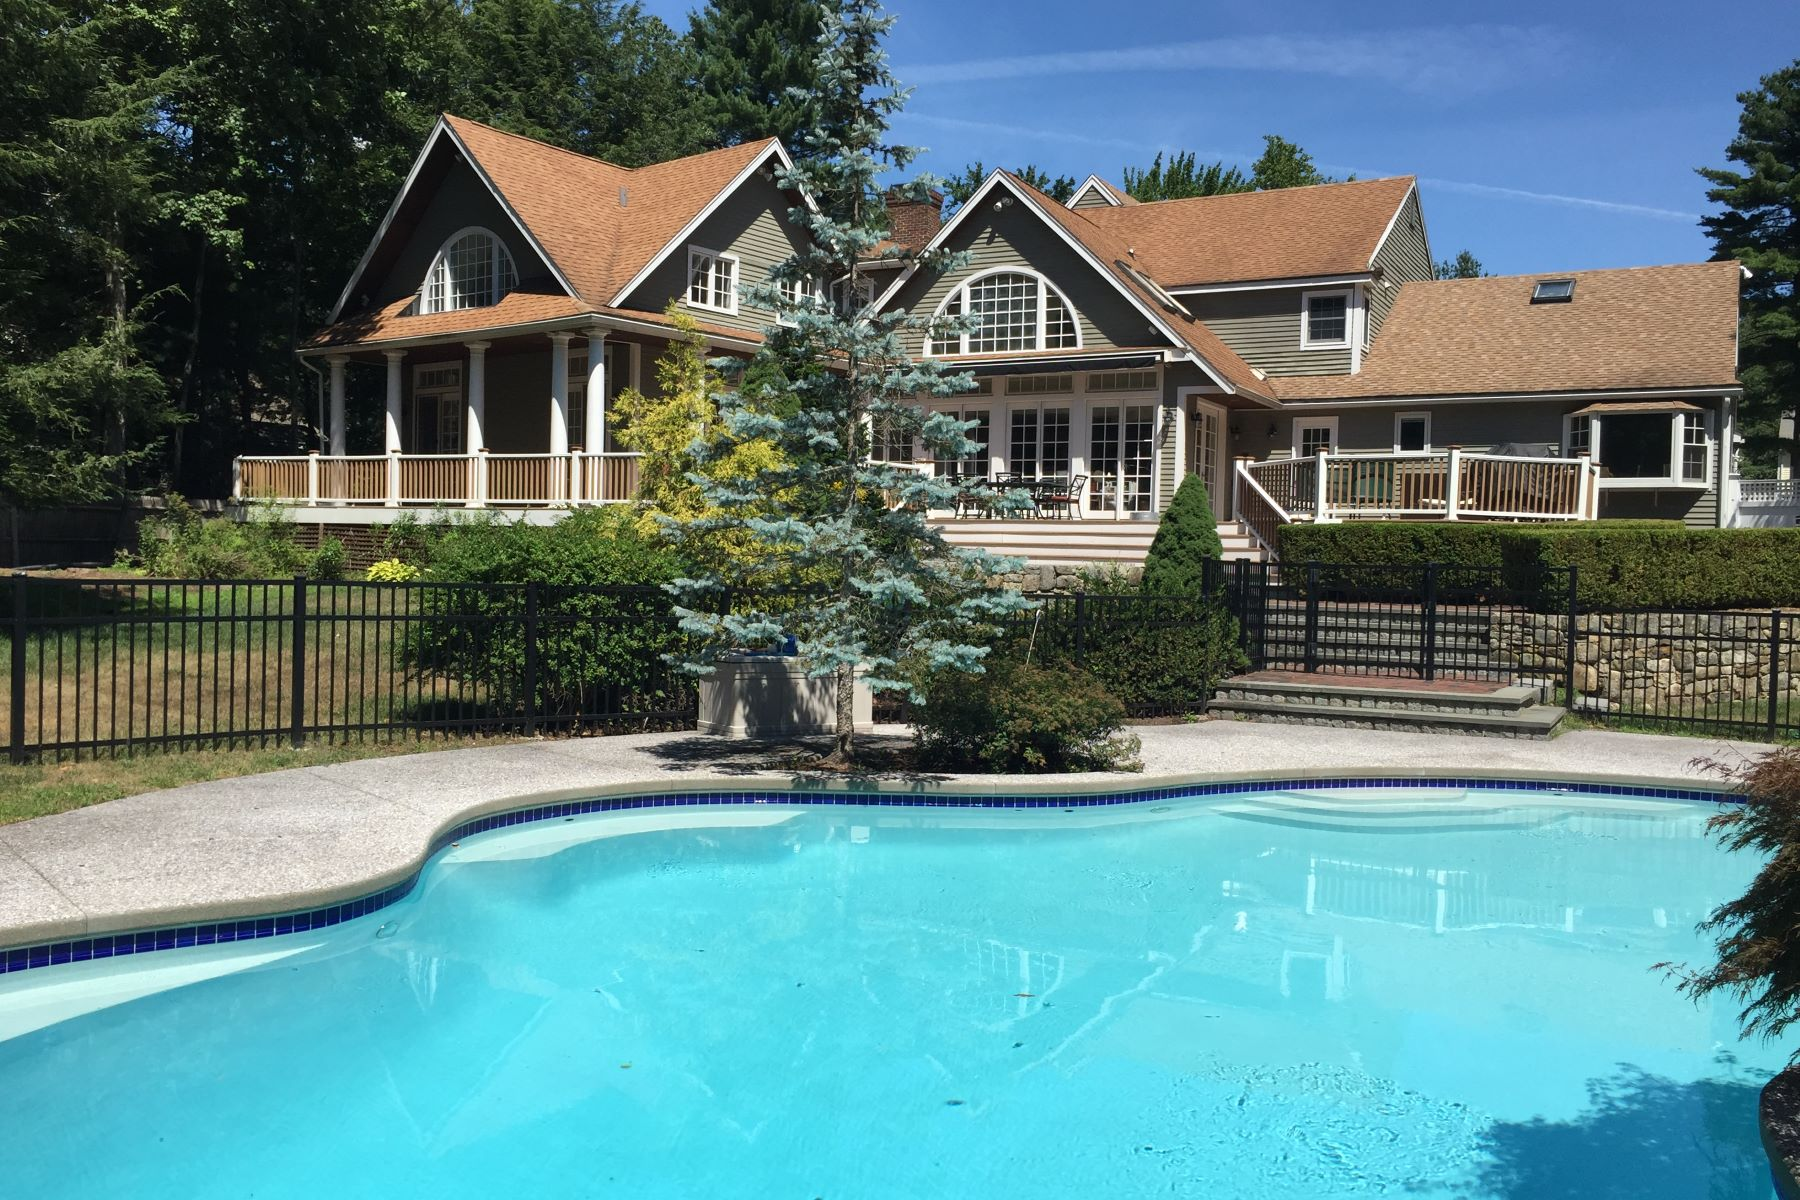 Single Family Home for Sale at 10 Dover Farm Rd, Medfield Medfield, 02052 United States